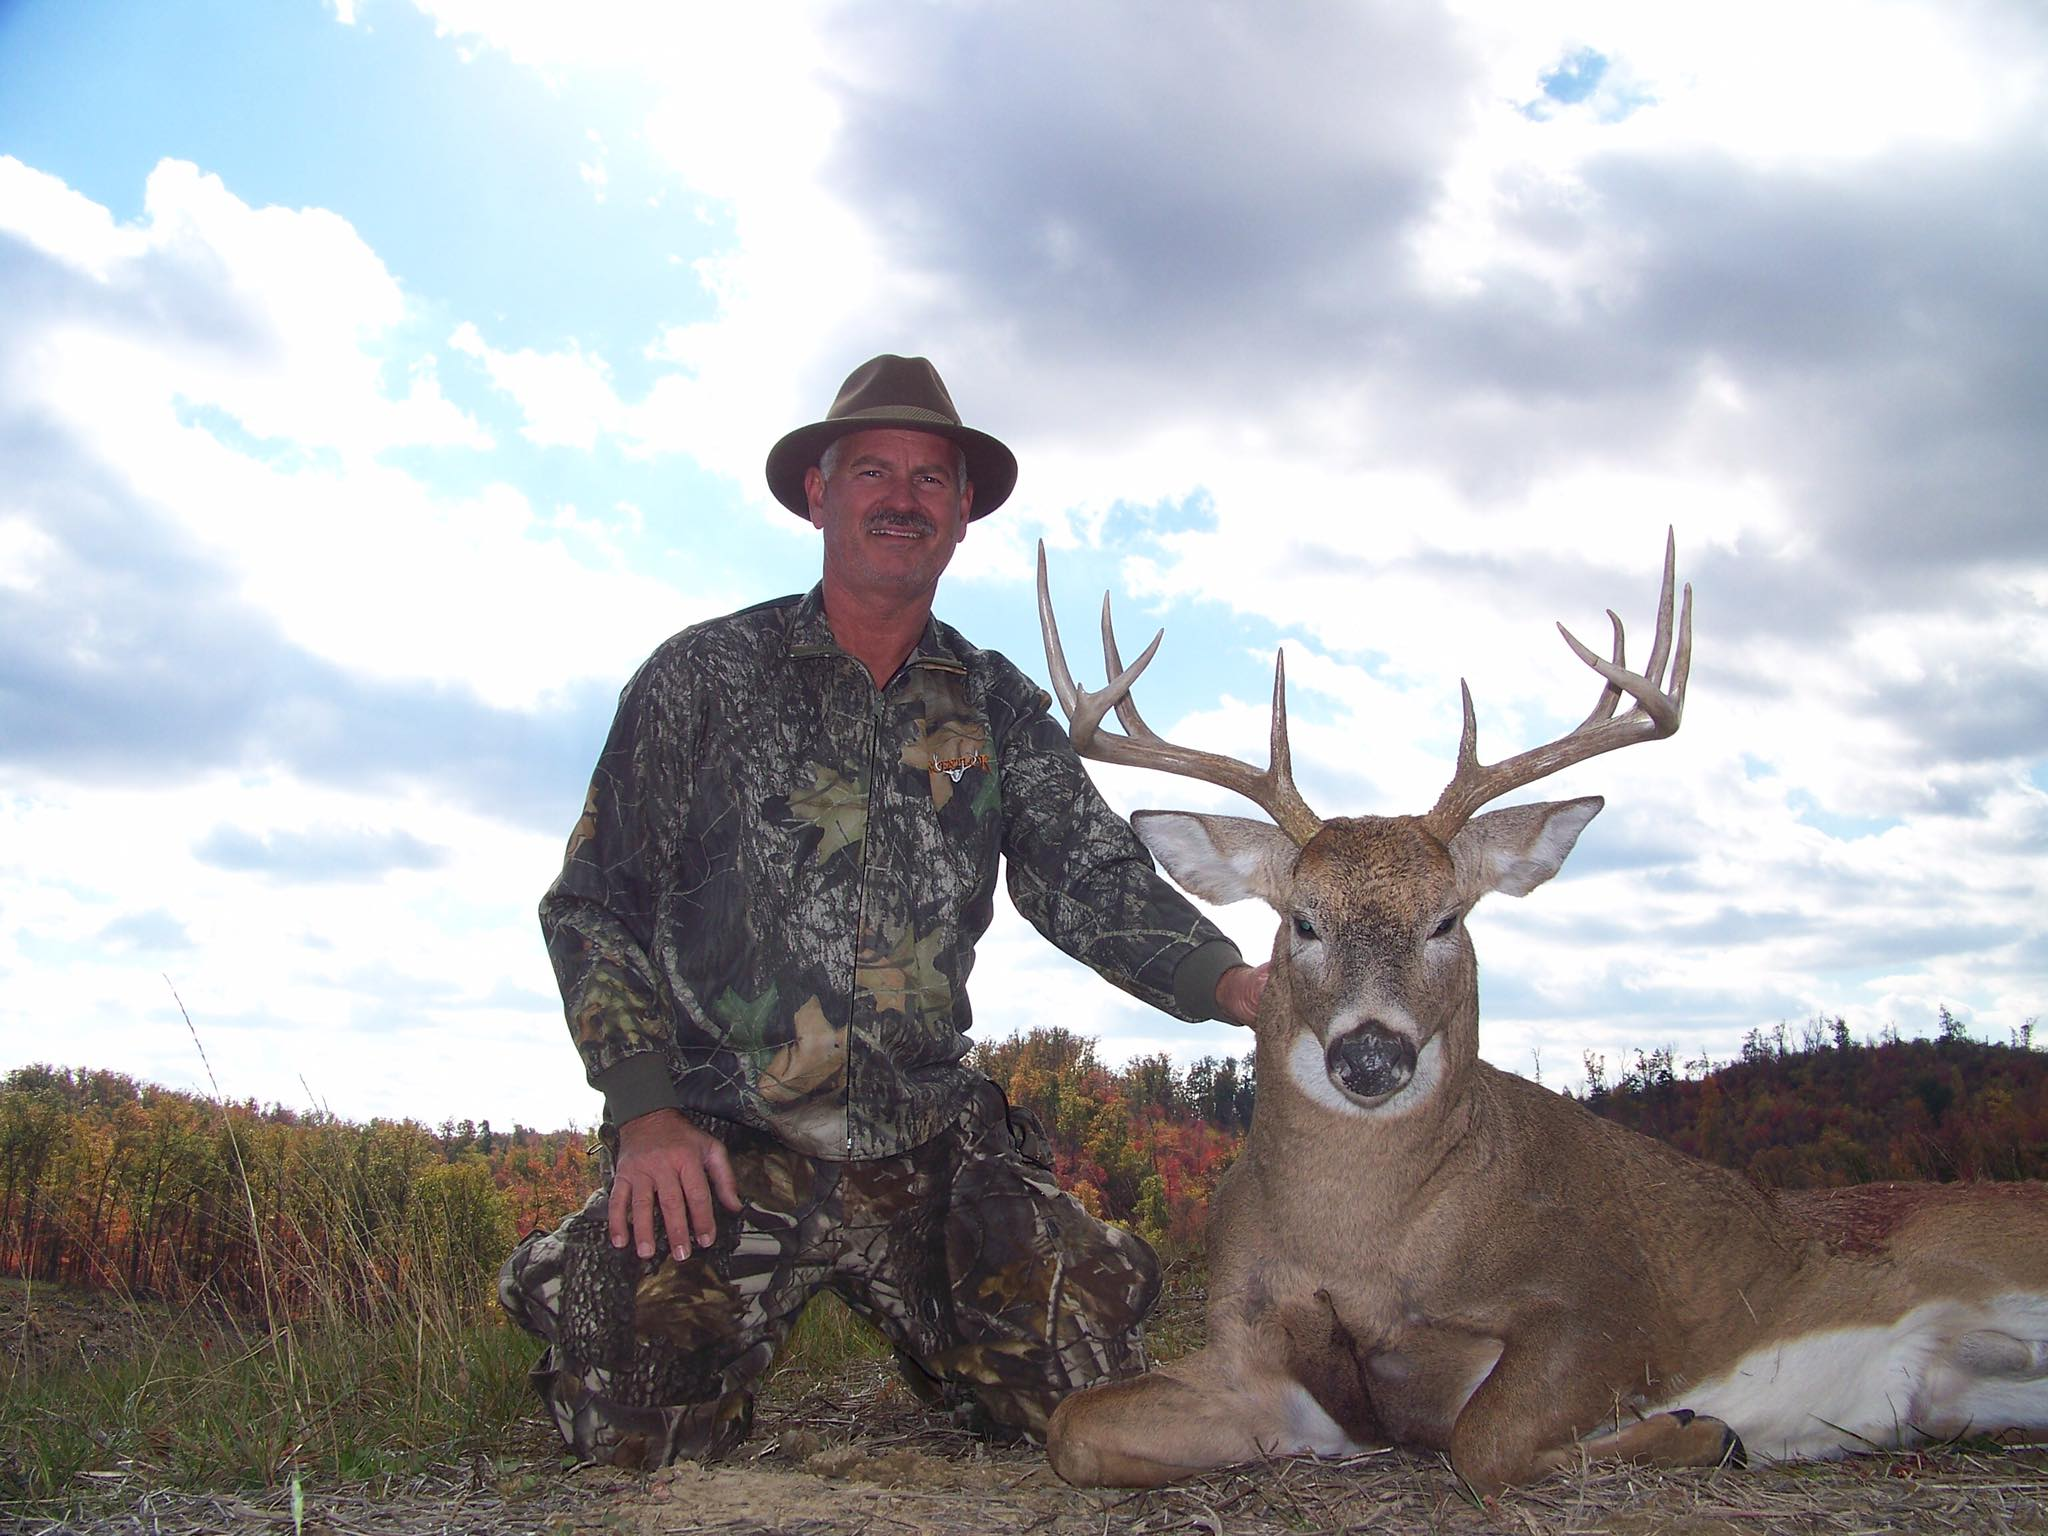 5-day-late-season-hunt-dec-5th-jan-31-15648827621974702185